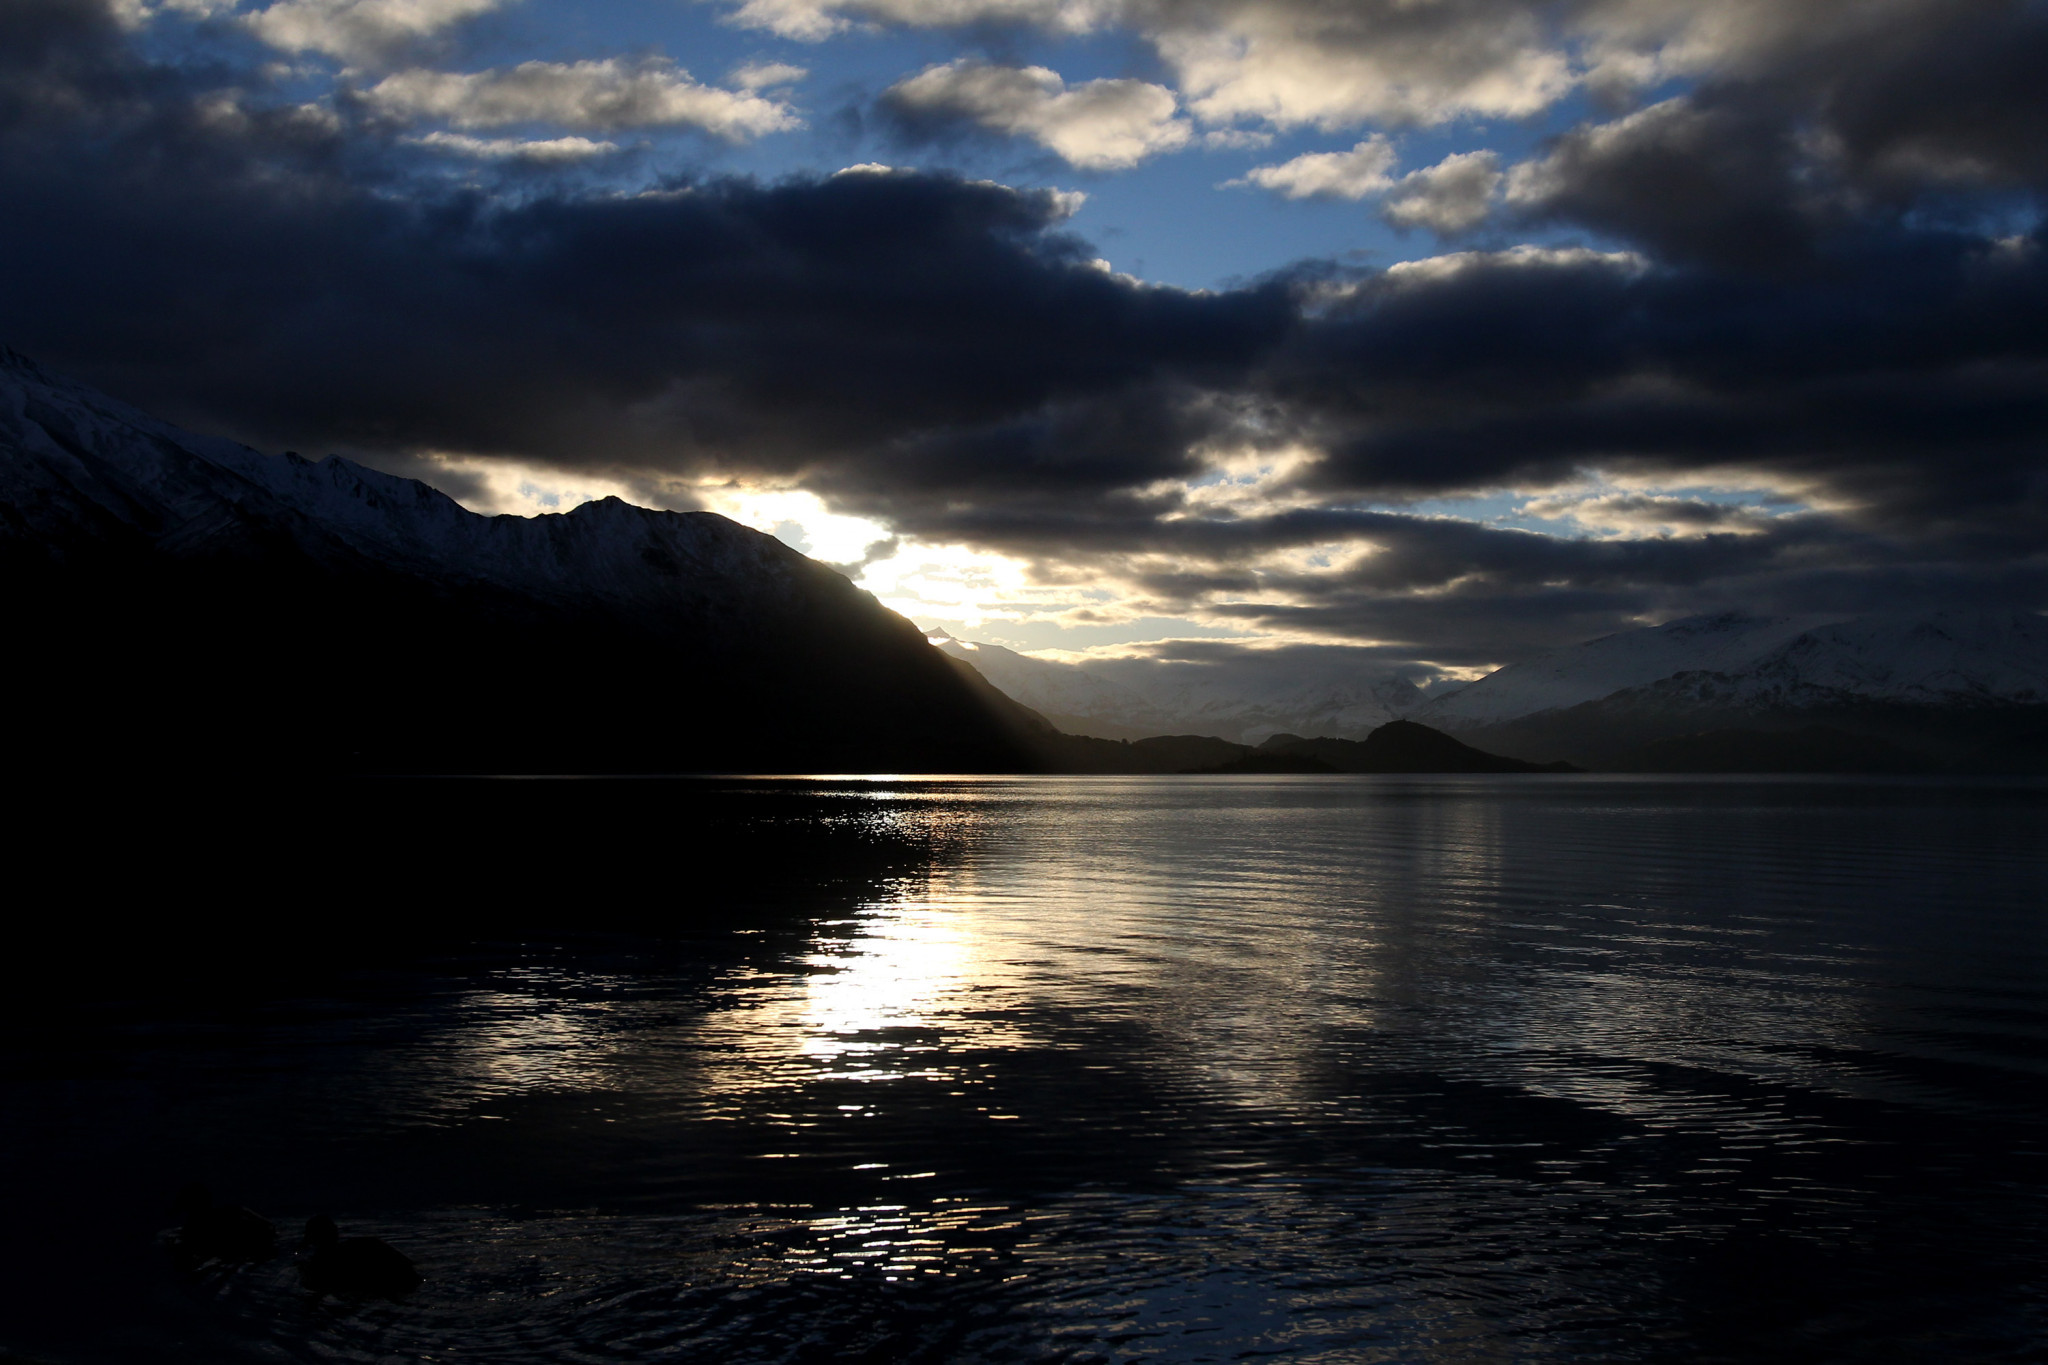 Lake Wānaka Tourism and Winter Games NZ are putting on an outdoor film viewing ©Getty Images